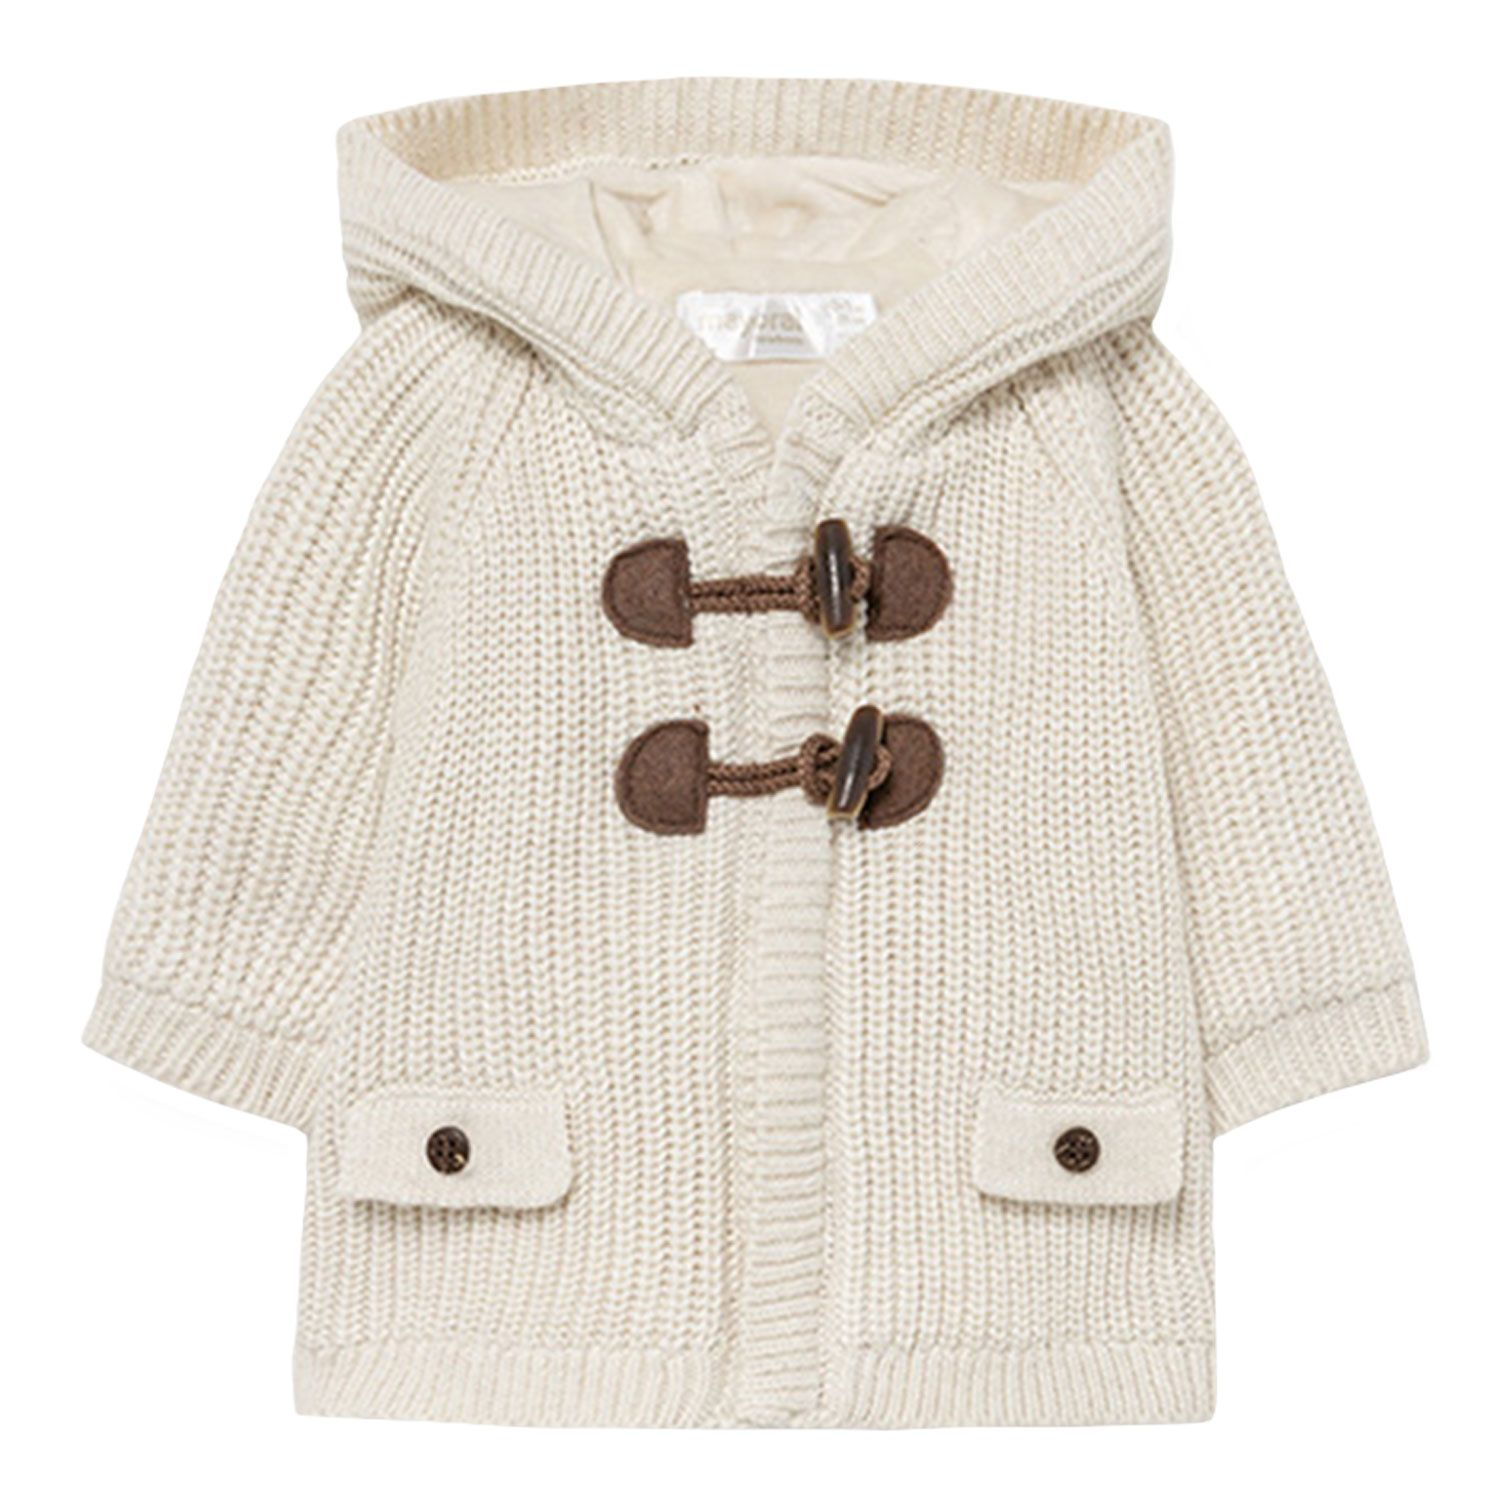 Picture of Mayoral 2367 baby vest off white